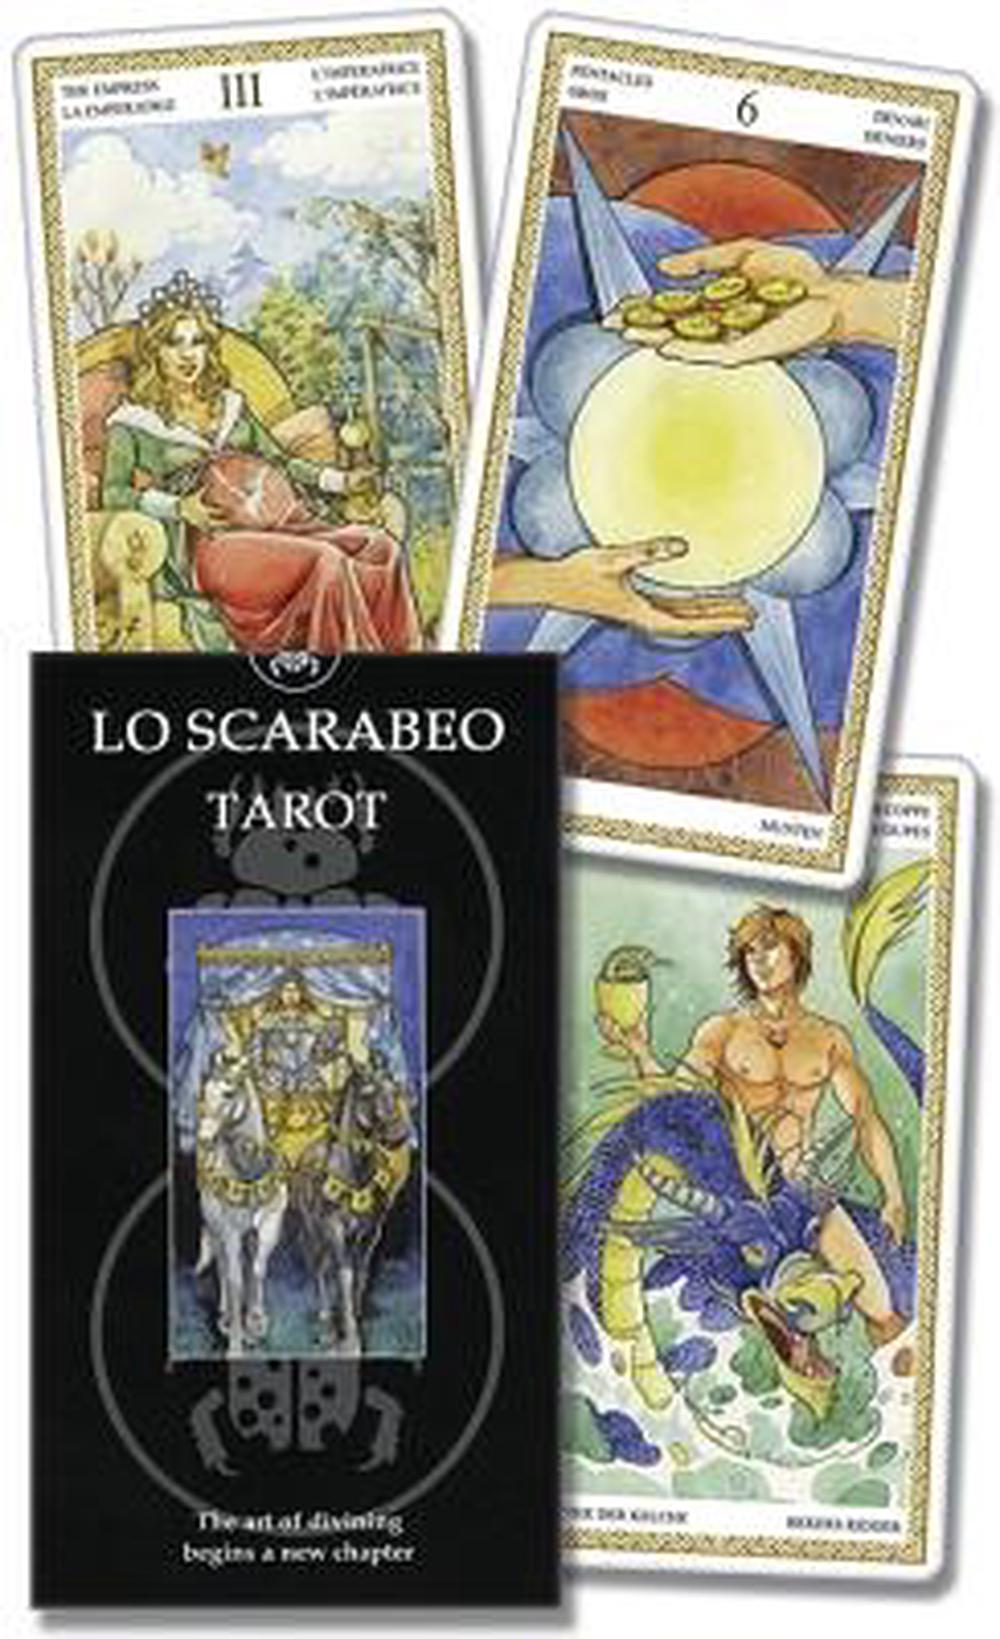 Lo Scarabeo Tarot By Mark McElroy